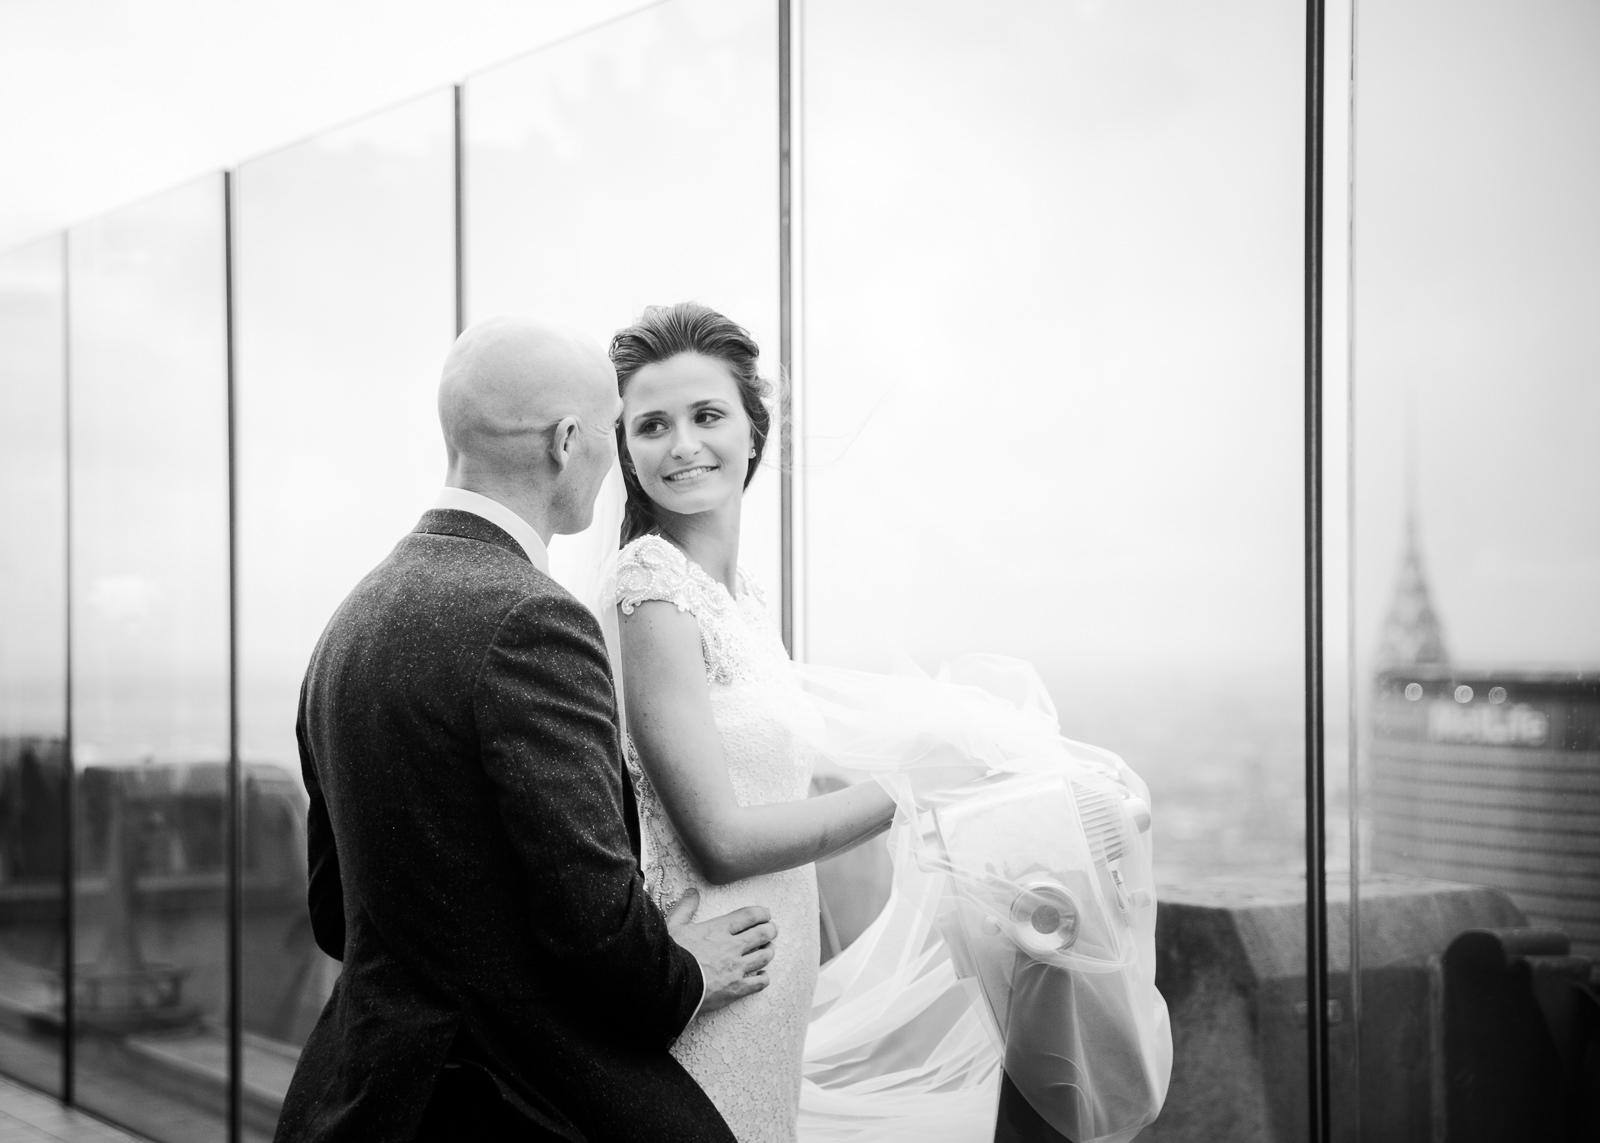 NYC-wedding-photos-by-Tanya-Isaeva-6.jpg